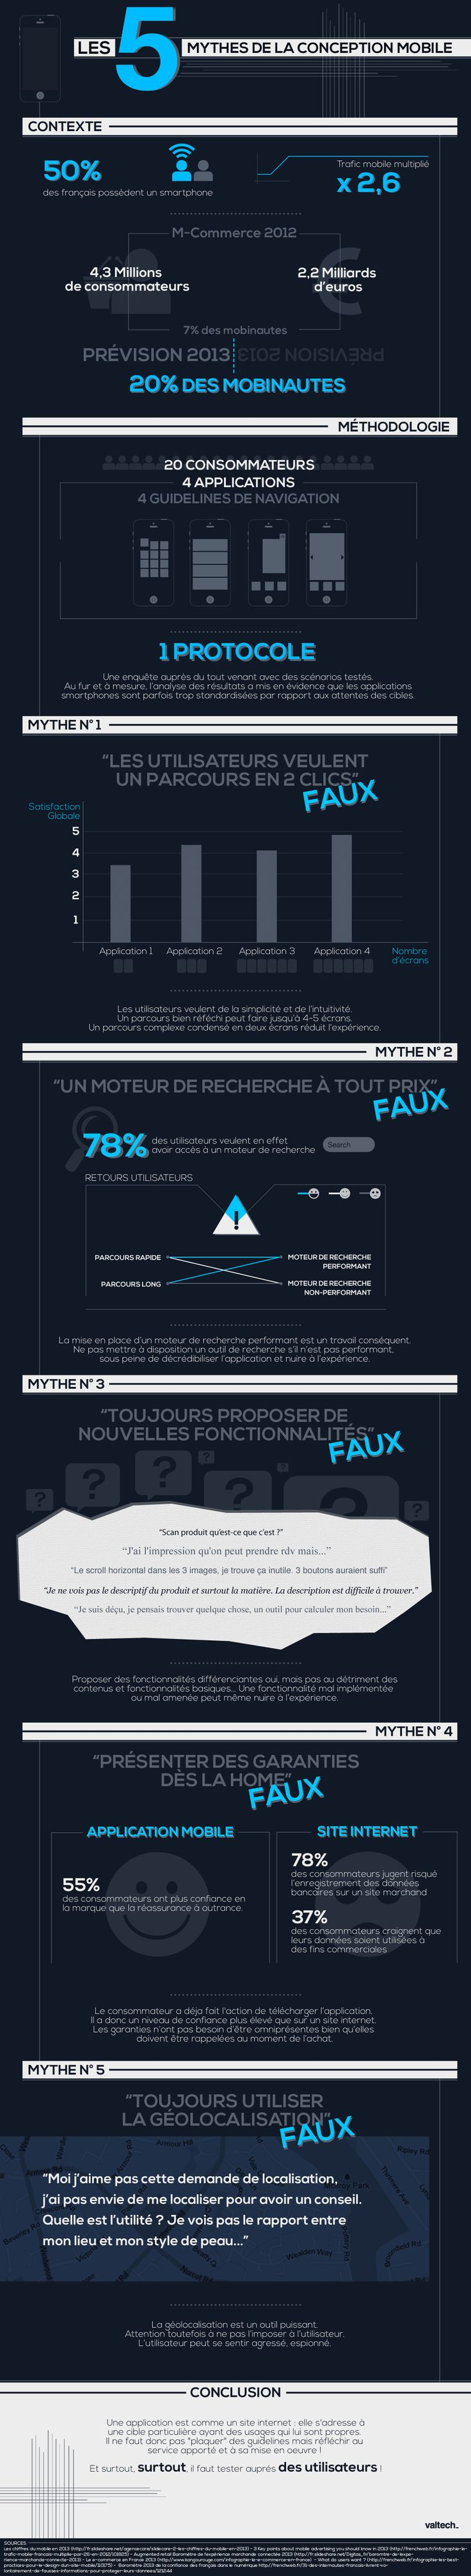 #Infographie : Les 5 mythes de la conception #mobile